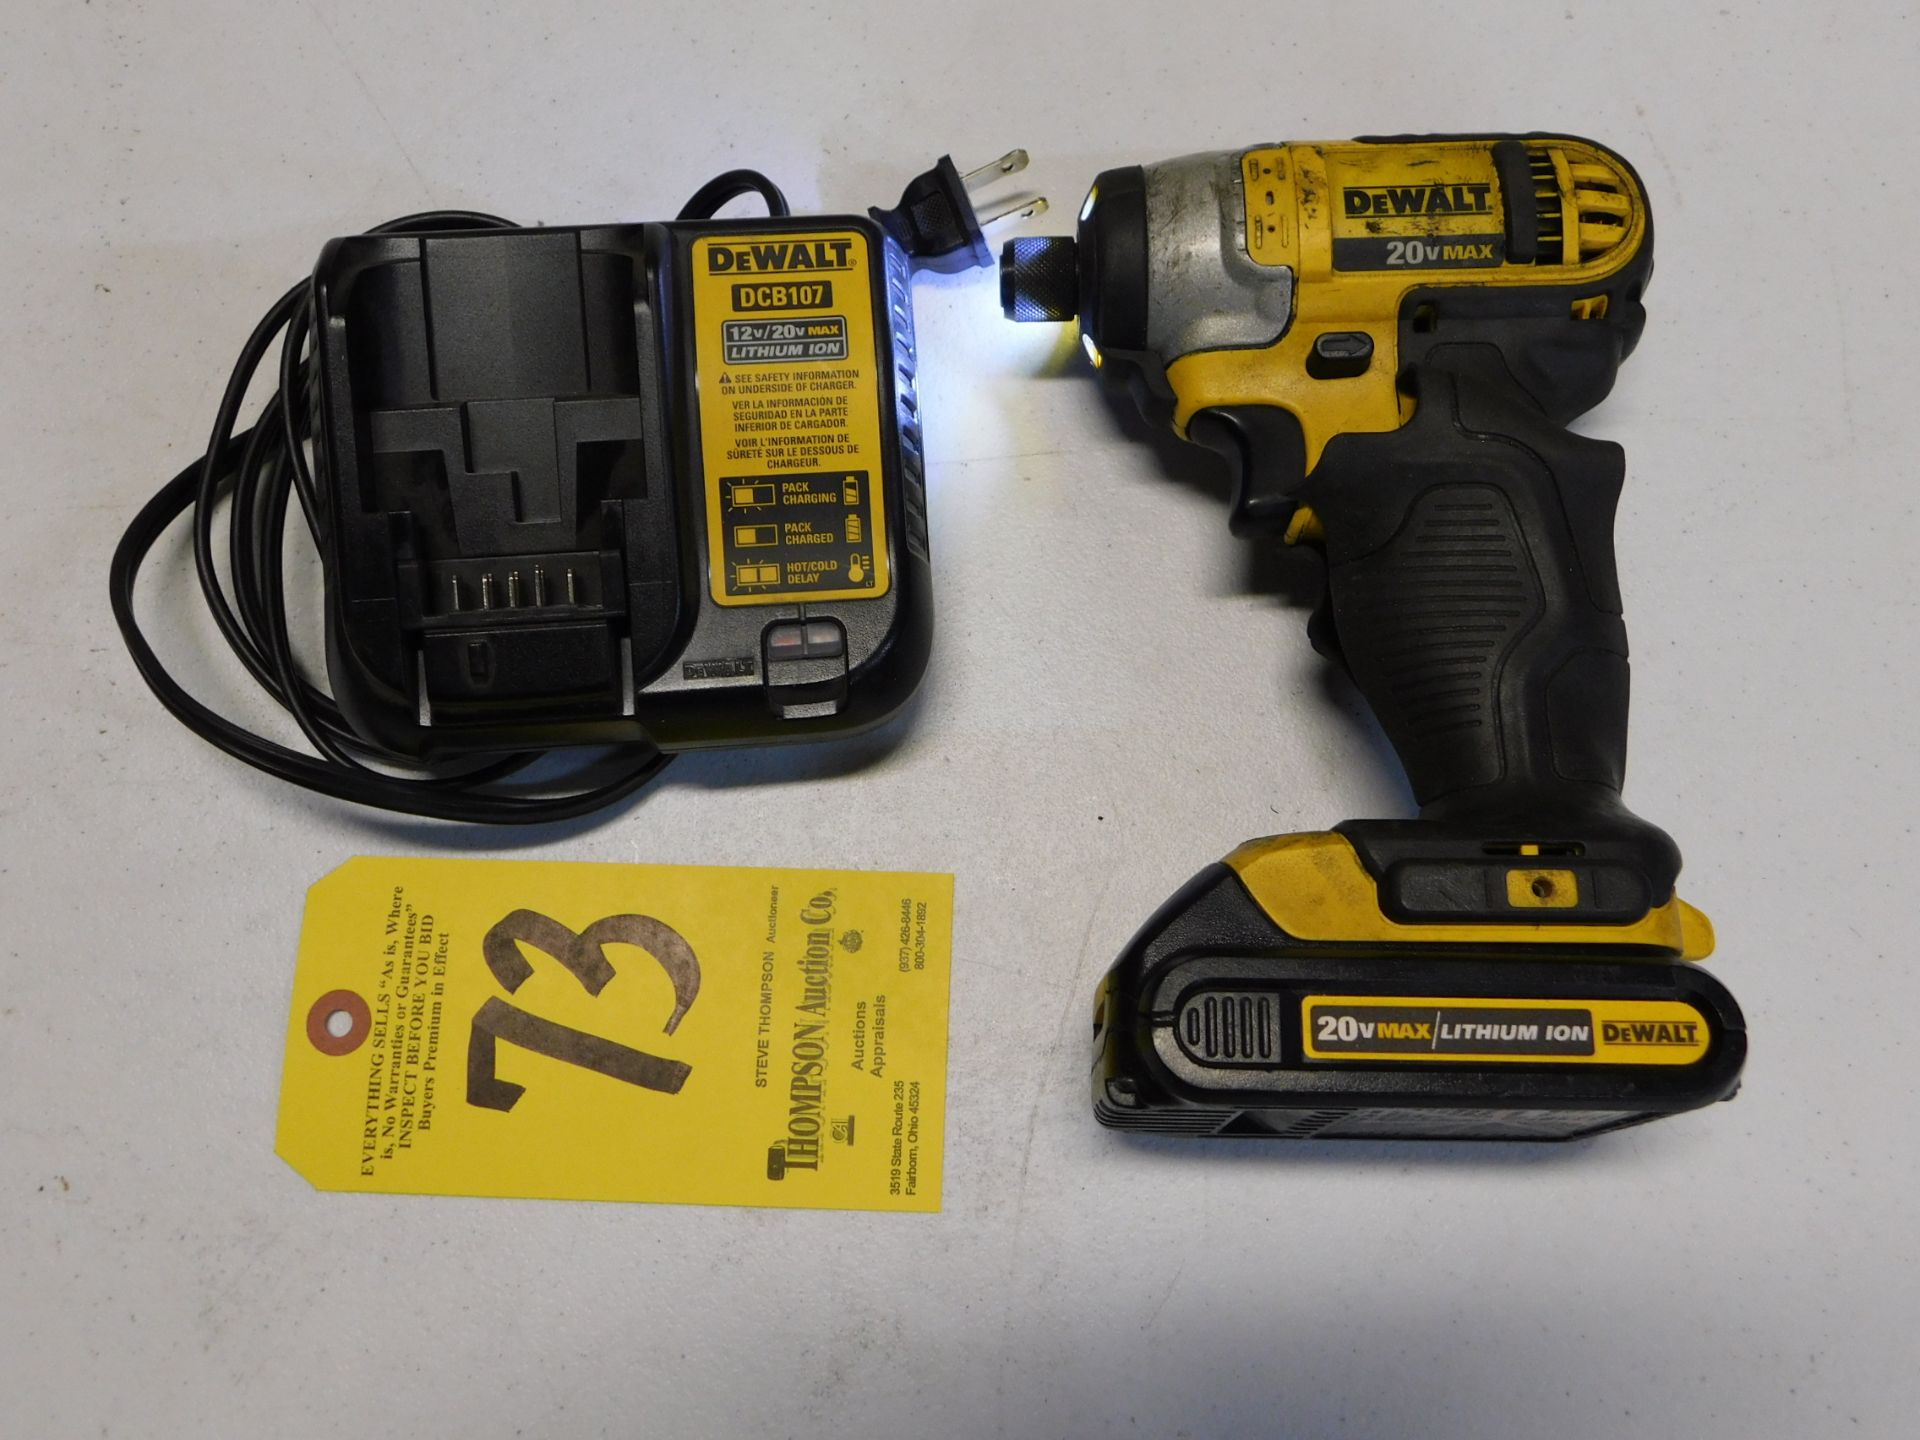 Lot 73 - Dewalt DCF885 Cordless 20V Impact Driver with Battery and Charger, Lot Location 3204 Olympia Dr.